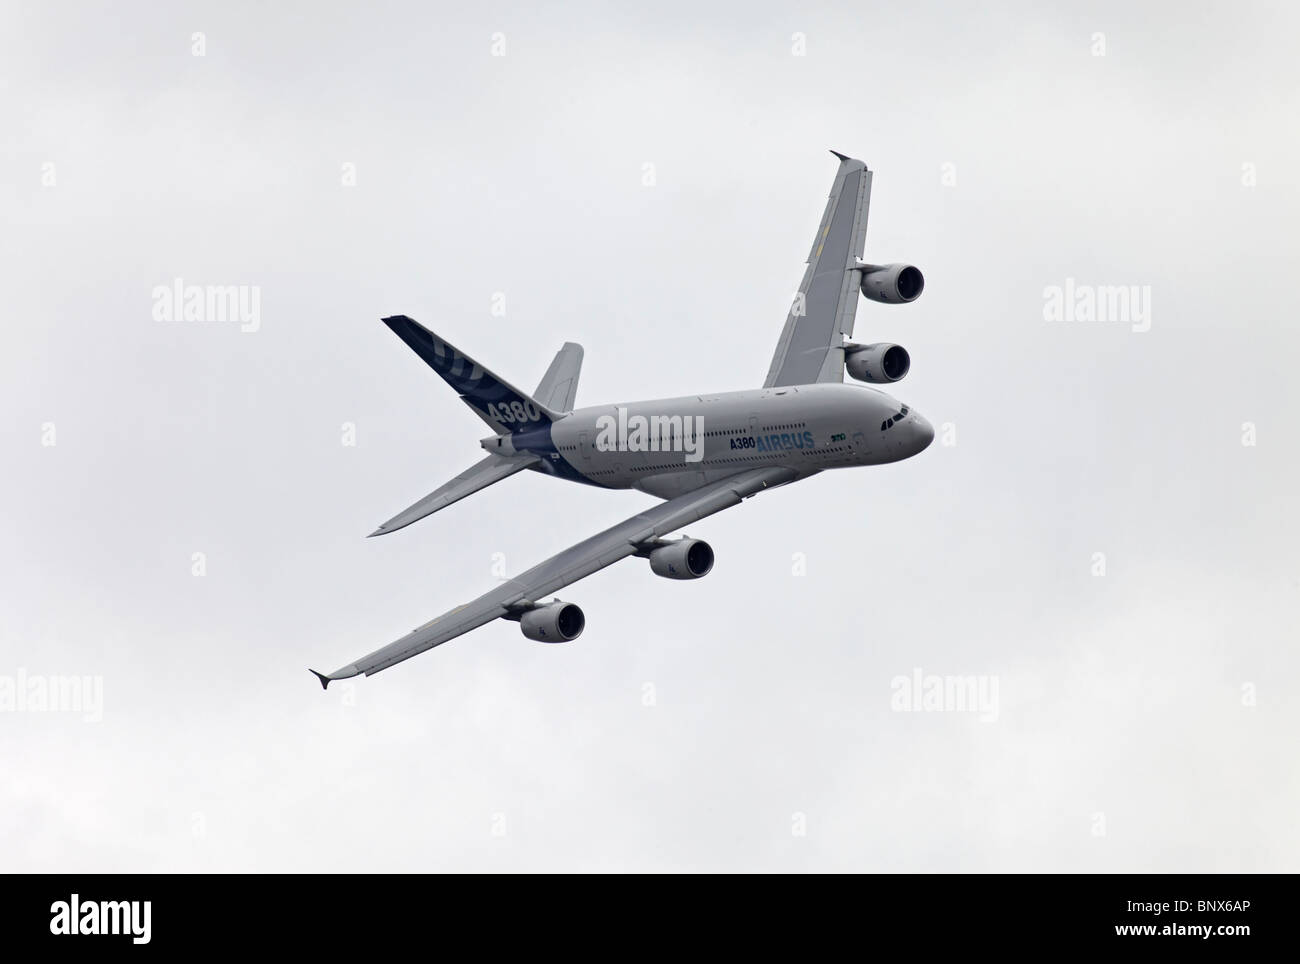 Farnborough Airbus industries A380 - Stock Image